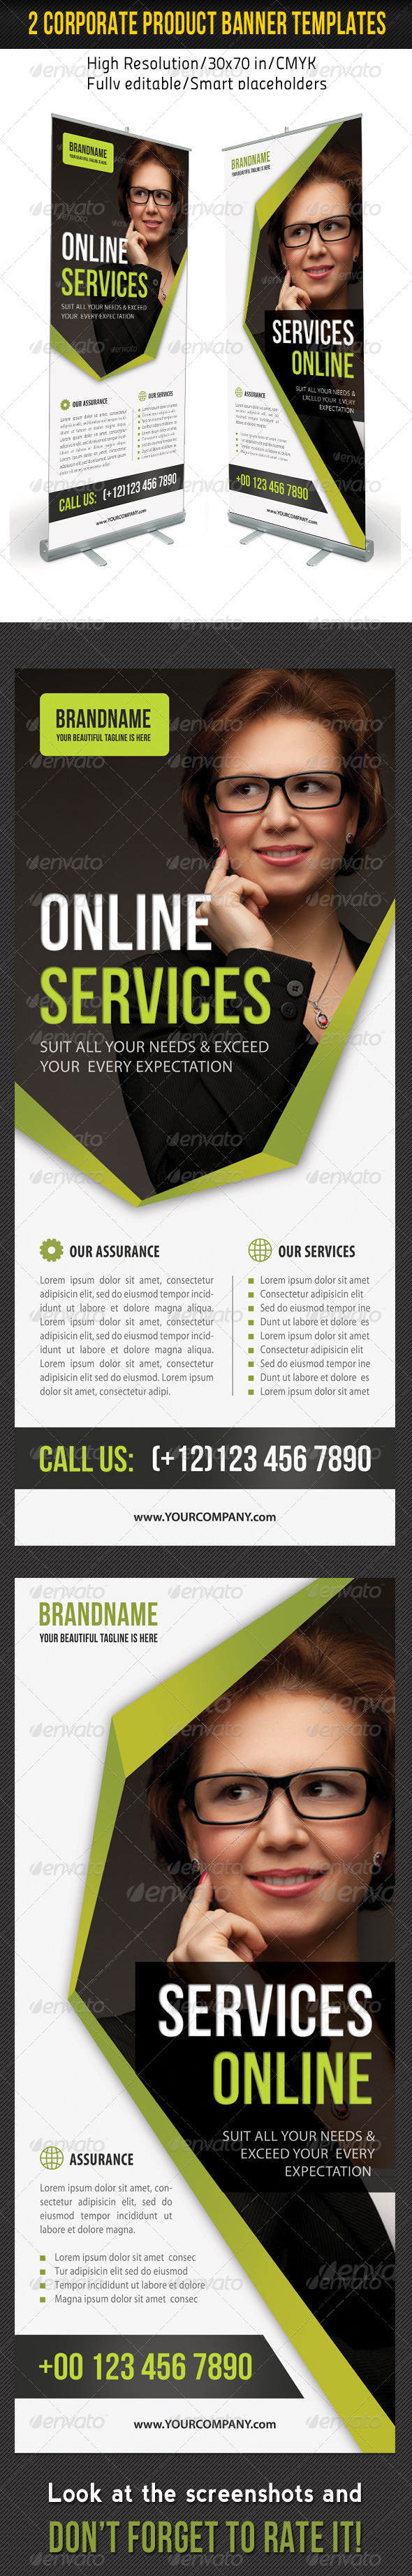 Corporate Multipurpose Banner Template 41 - Signage Print Templates